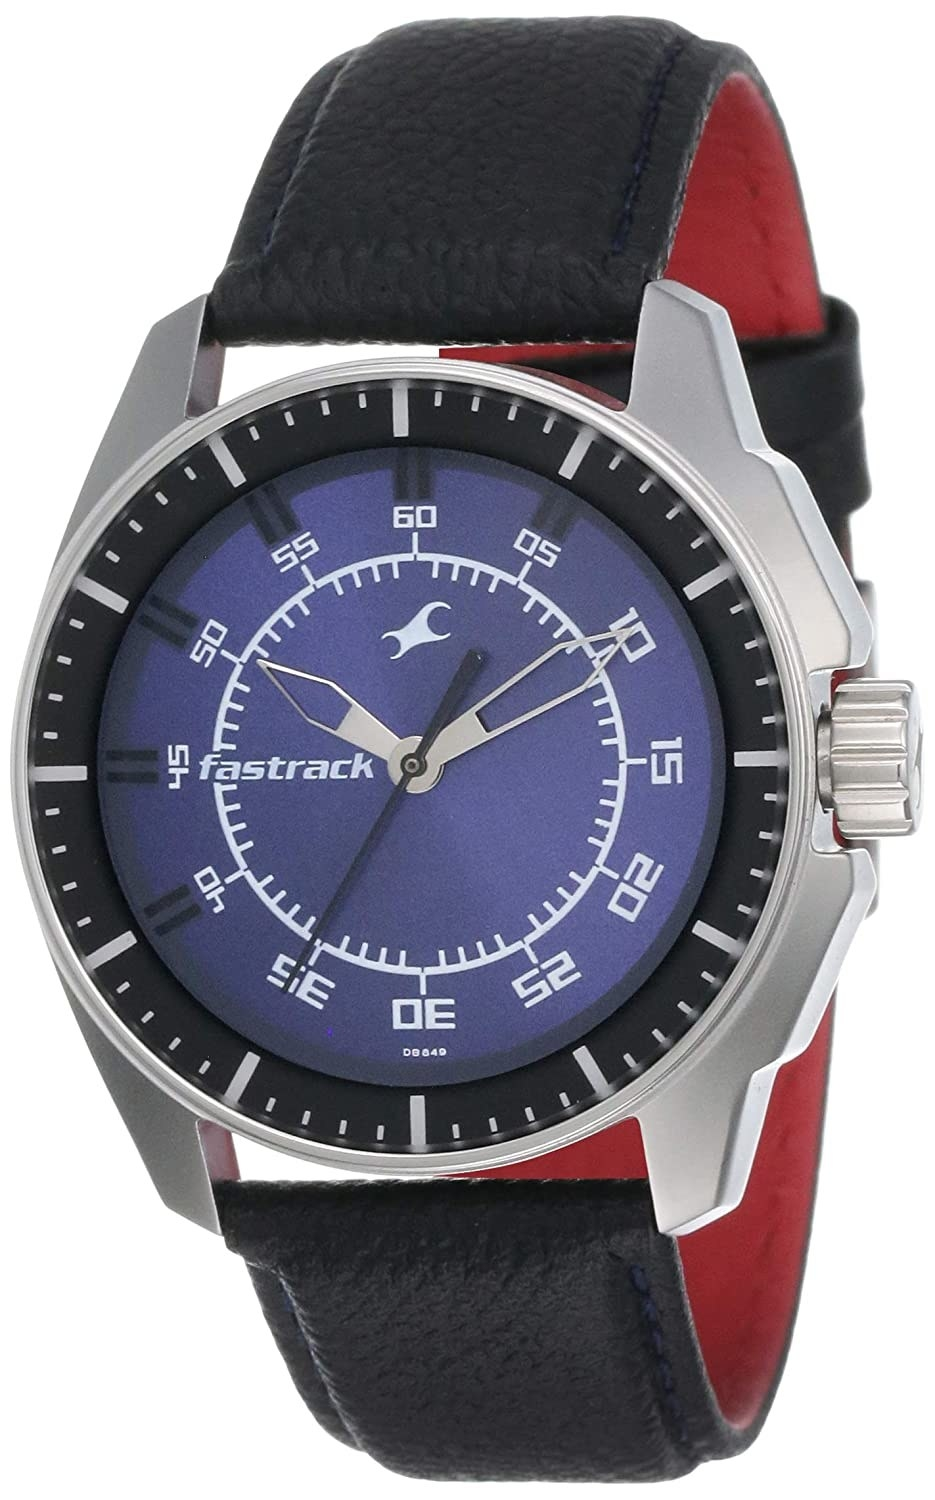 A watch with a black and red strap and a blue dial